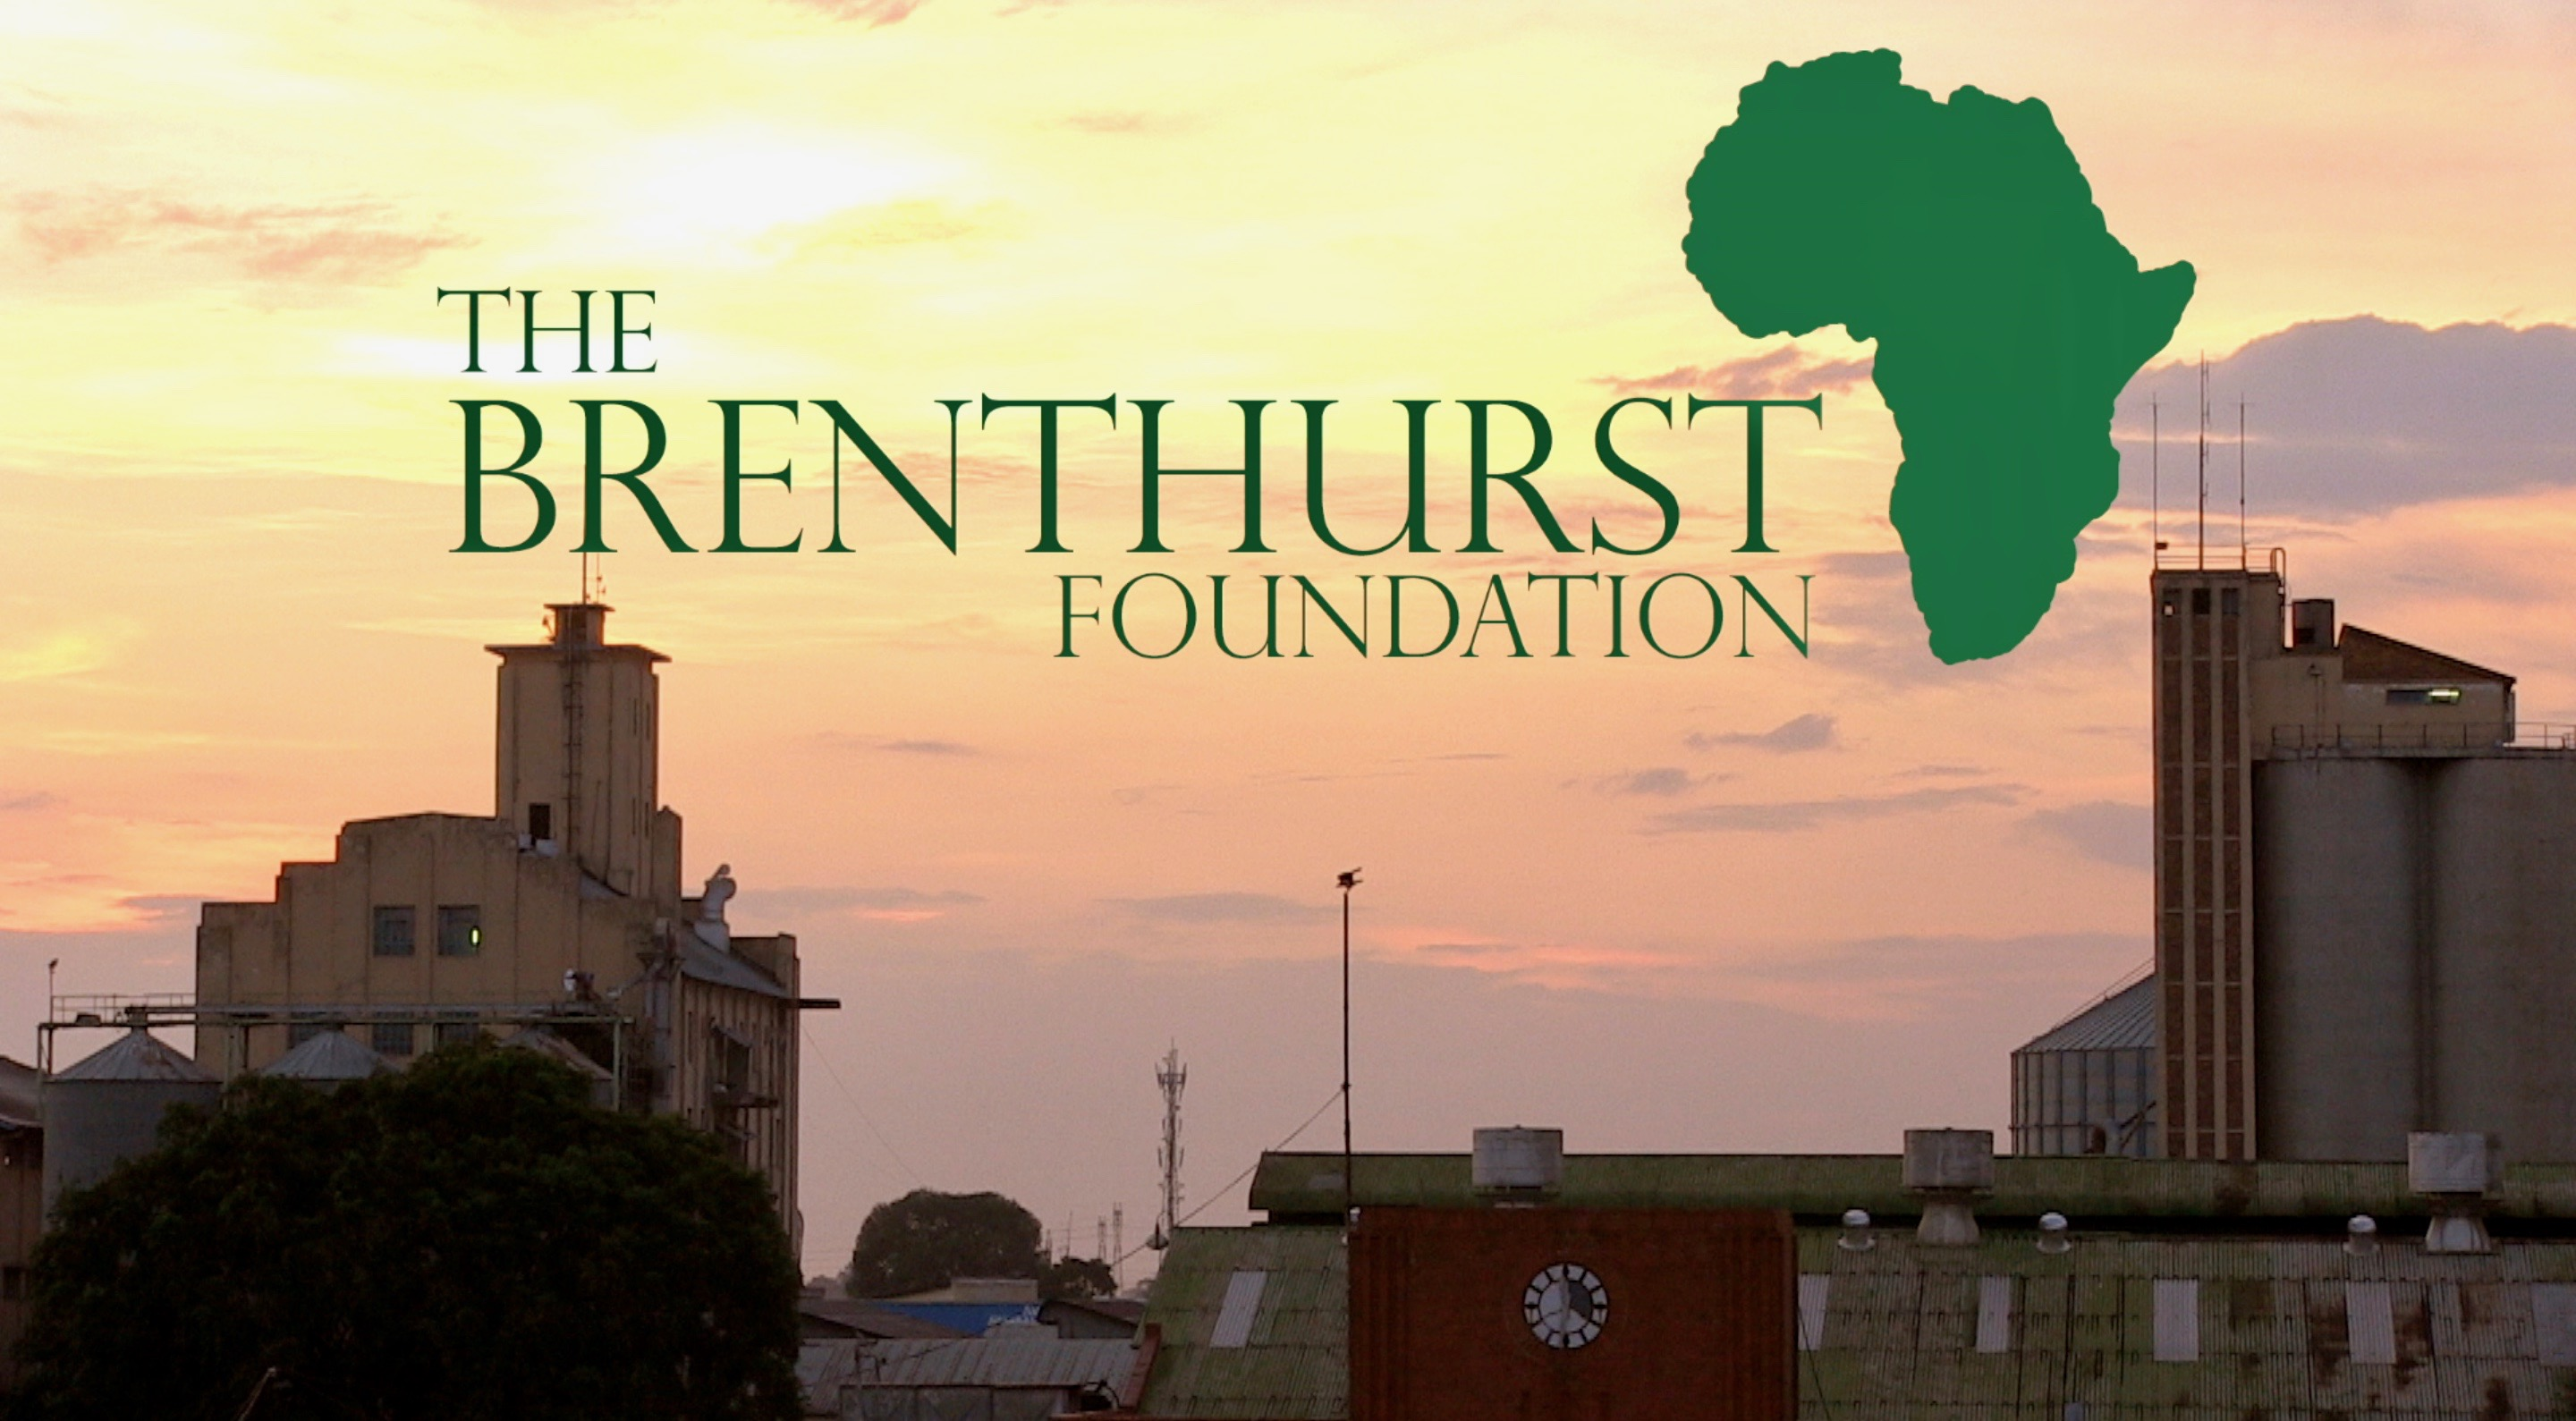 The Brenthurst Foundation